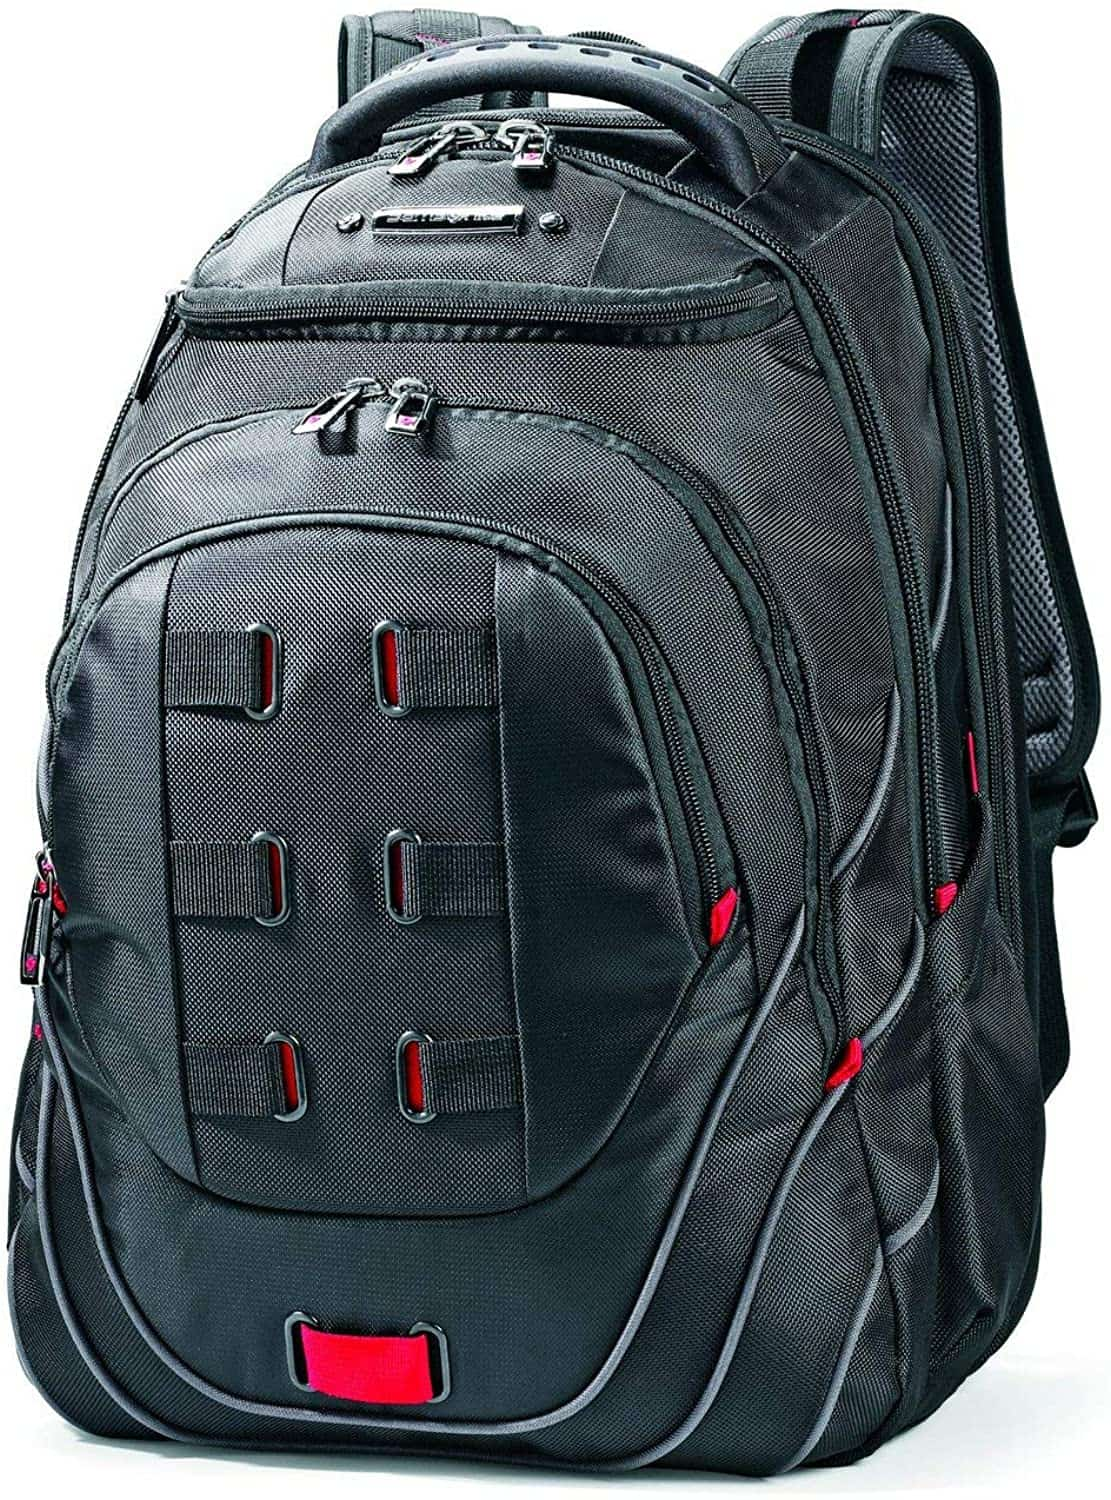 13 Best Backpacks with Trolley Sleeve in 2020